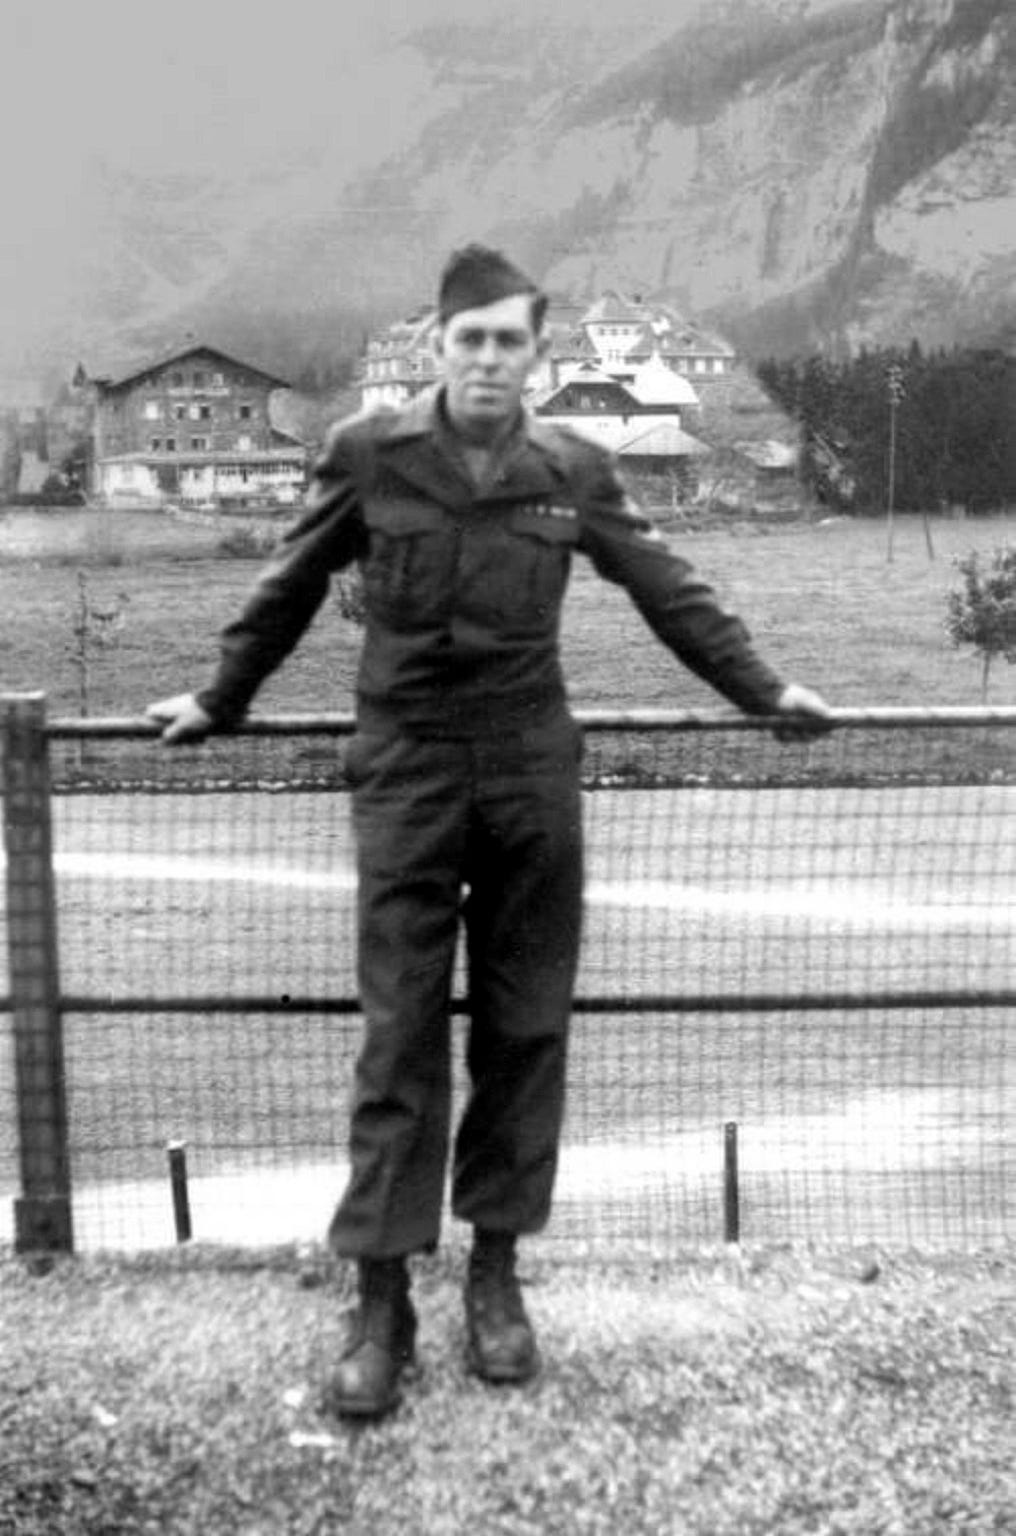 Raymond McDonogh, 1945, in Switzerland at the end of WWII.